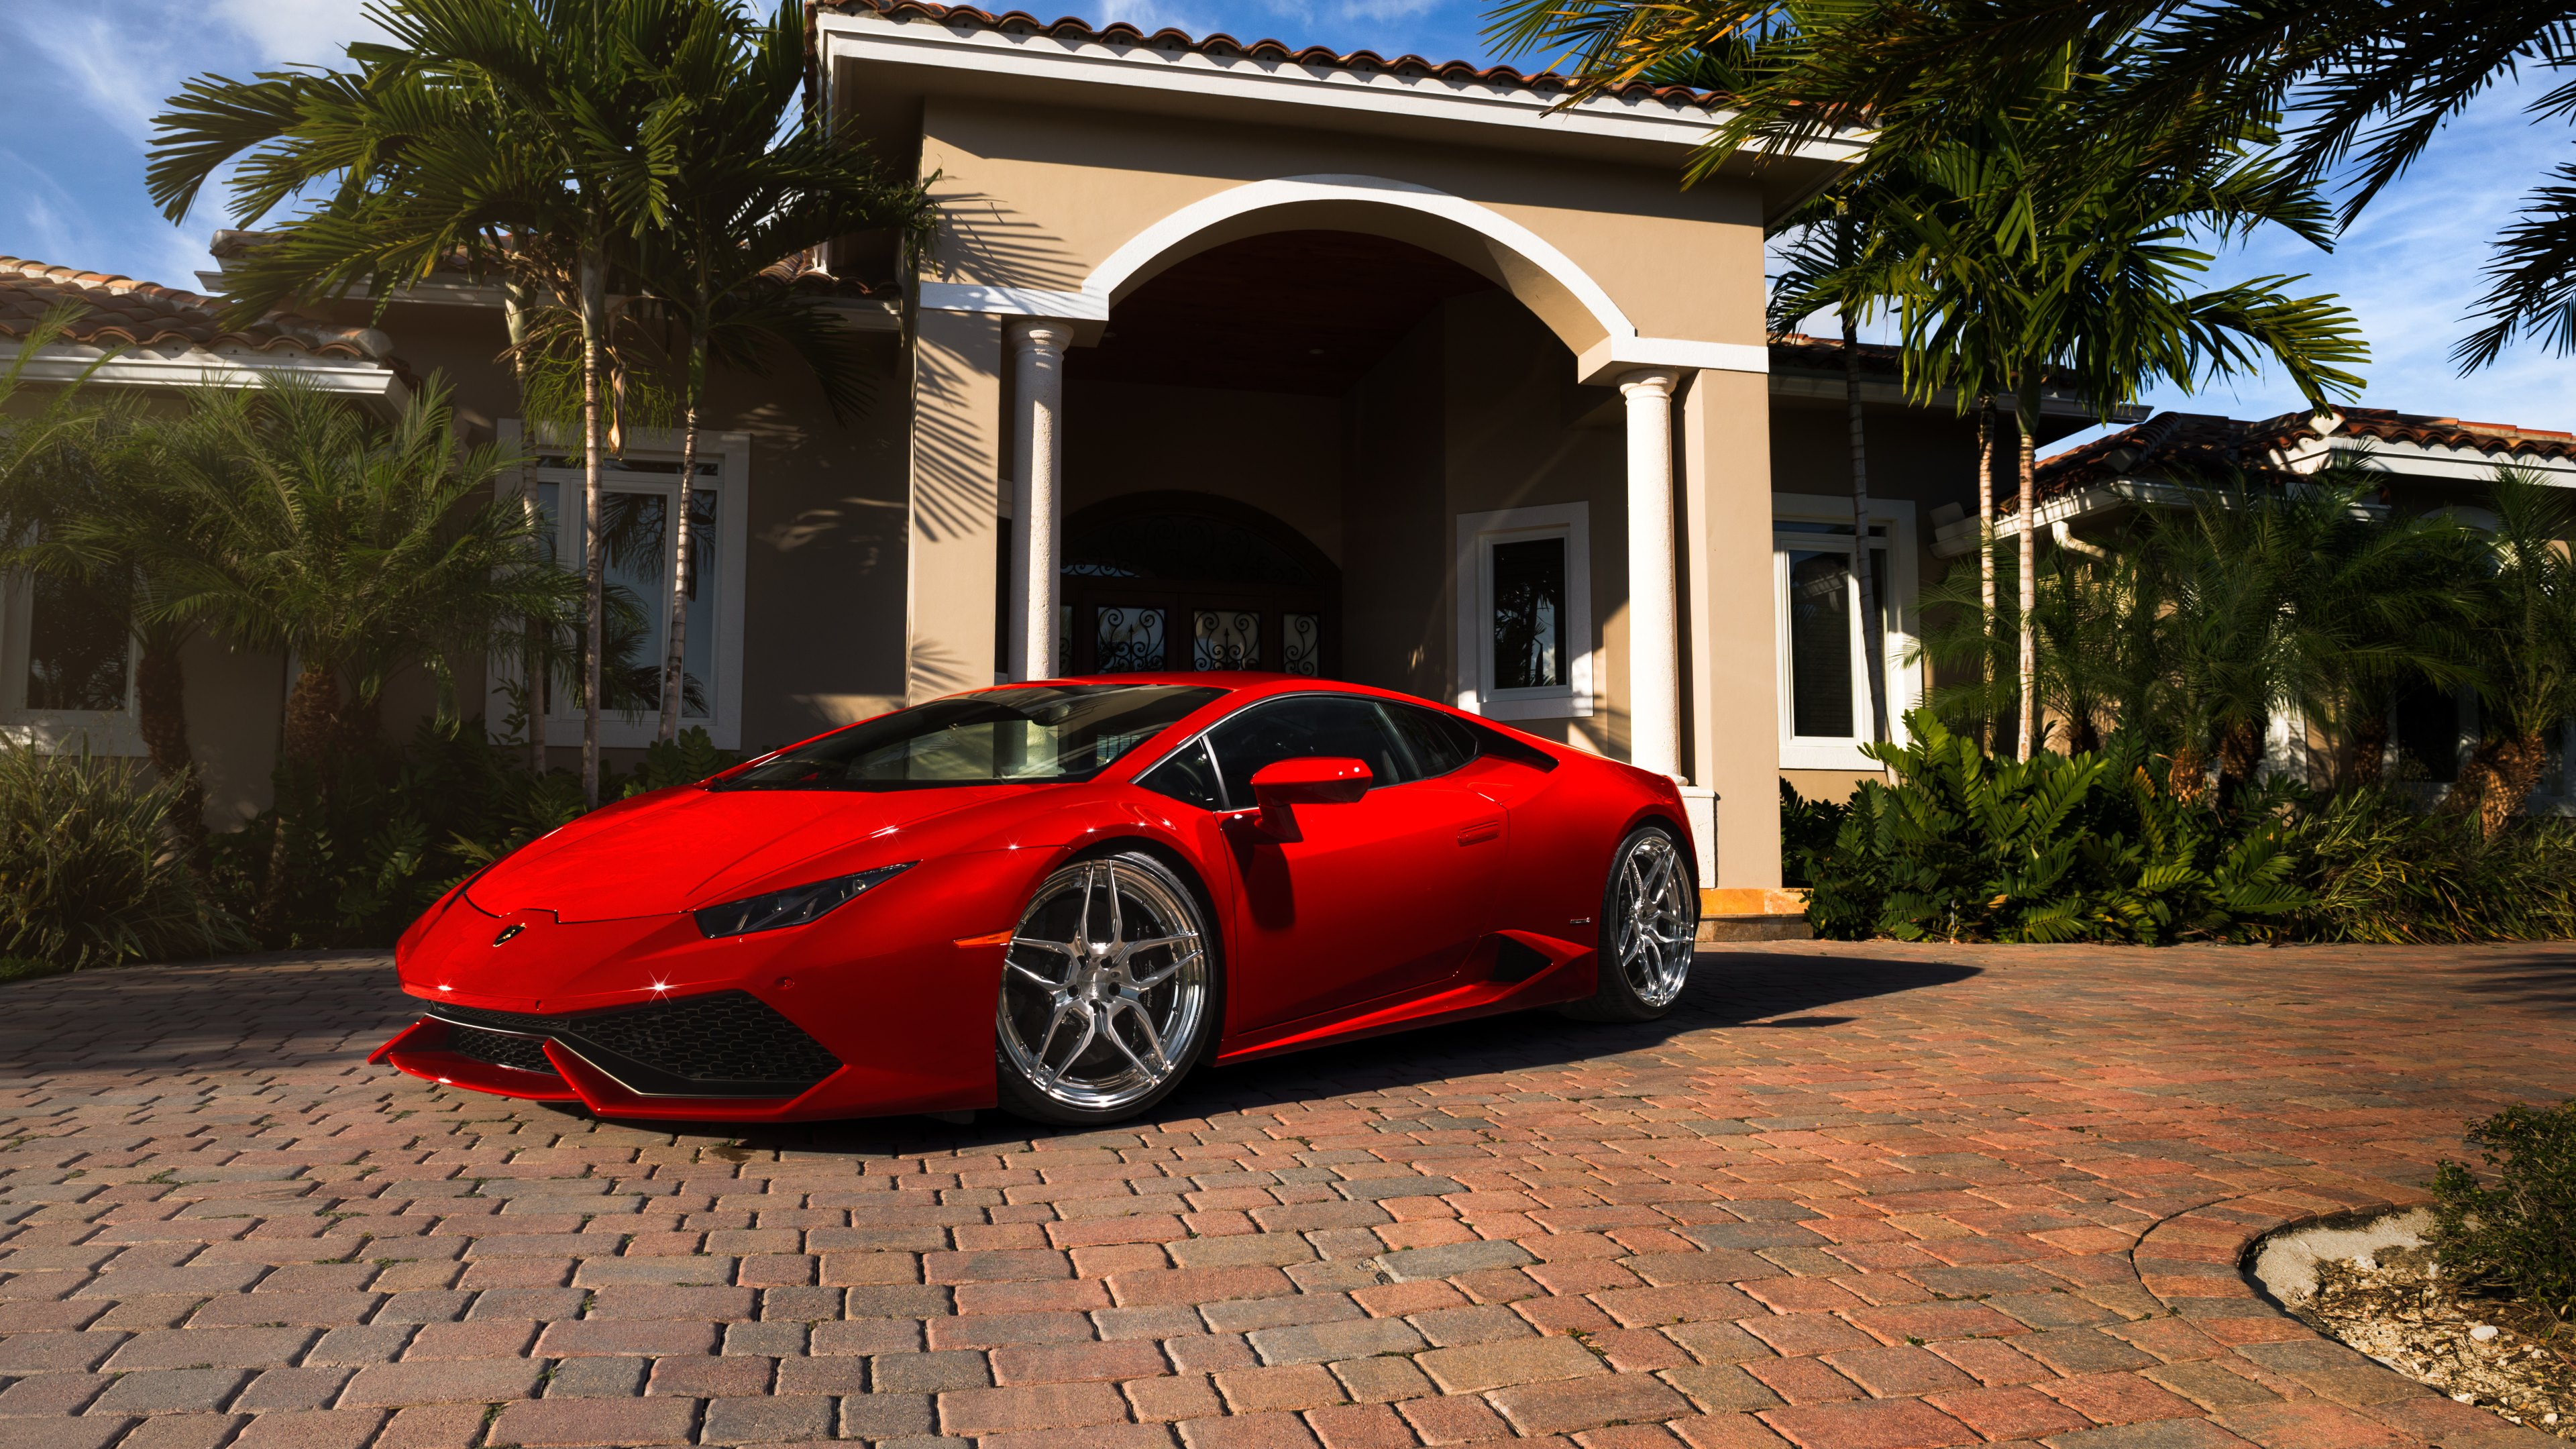 wallpaper lamborghini huracan red - Lamborghini Huracan Wallpaper